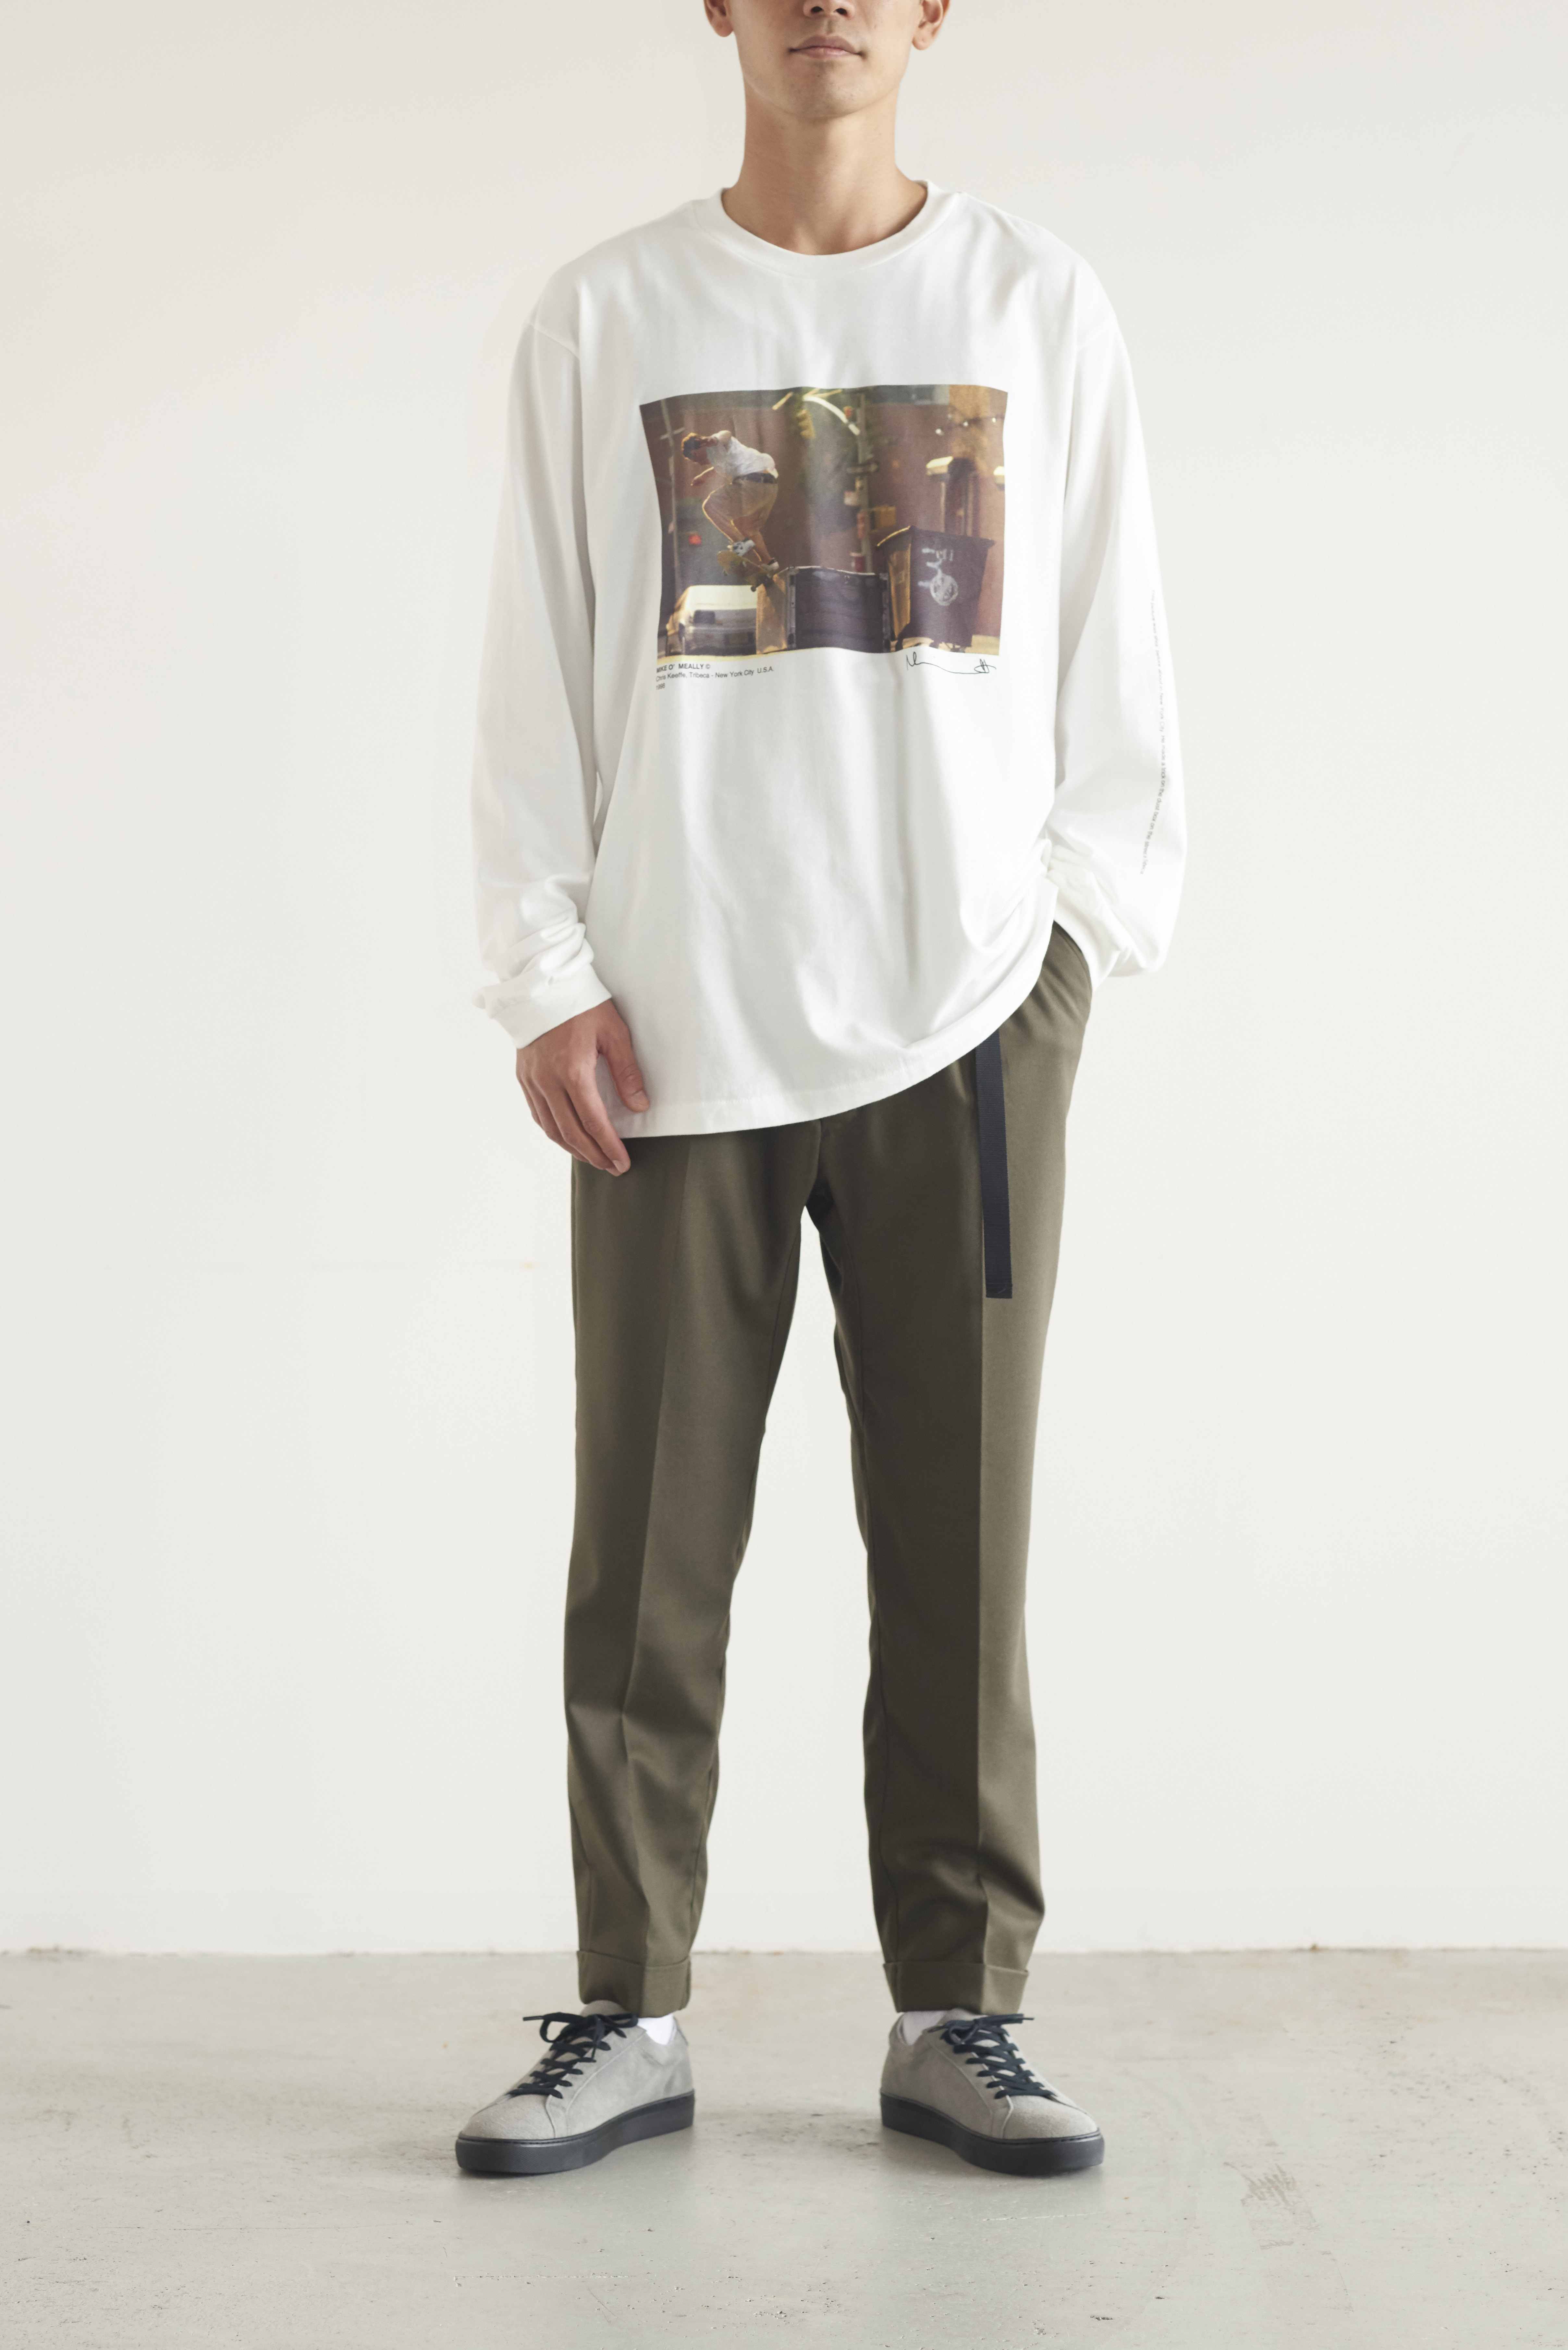 JOHN MASON SMITH CHRIS KEEFFE L/S